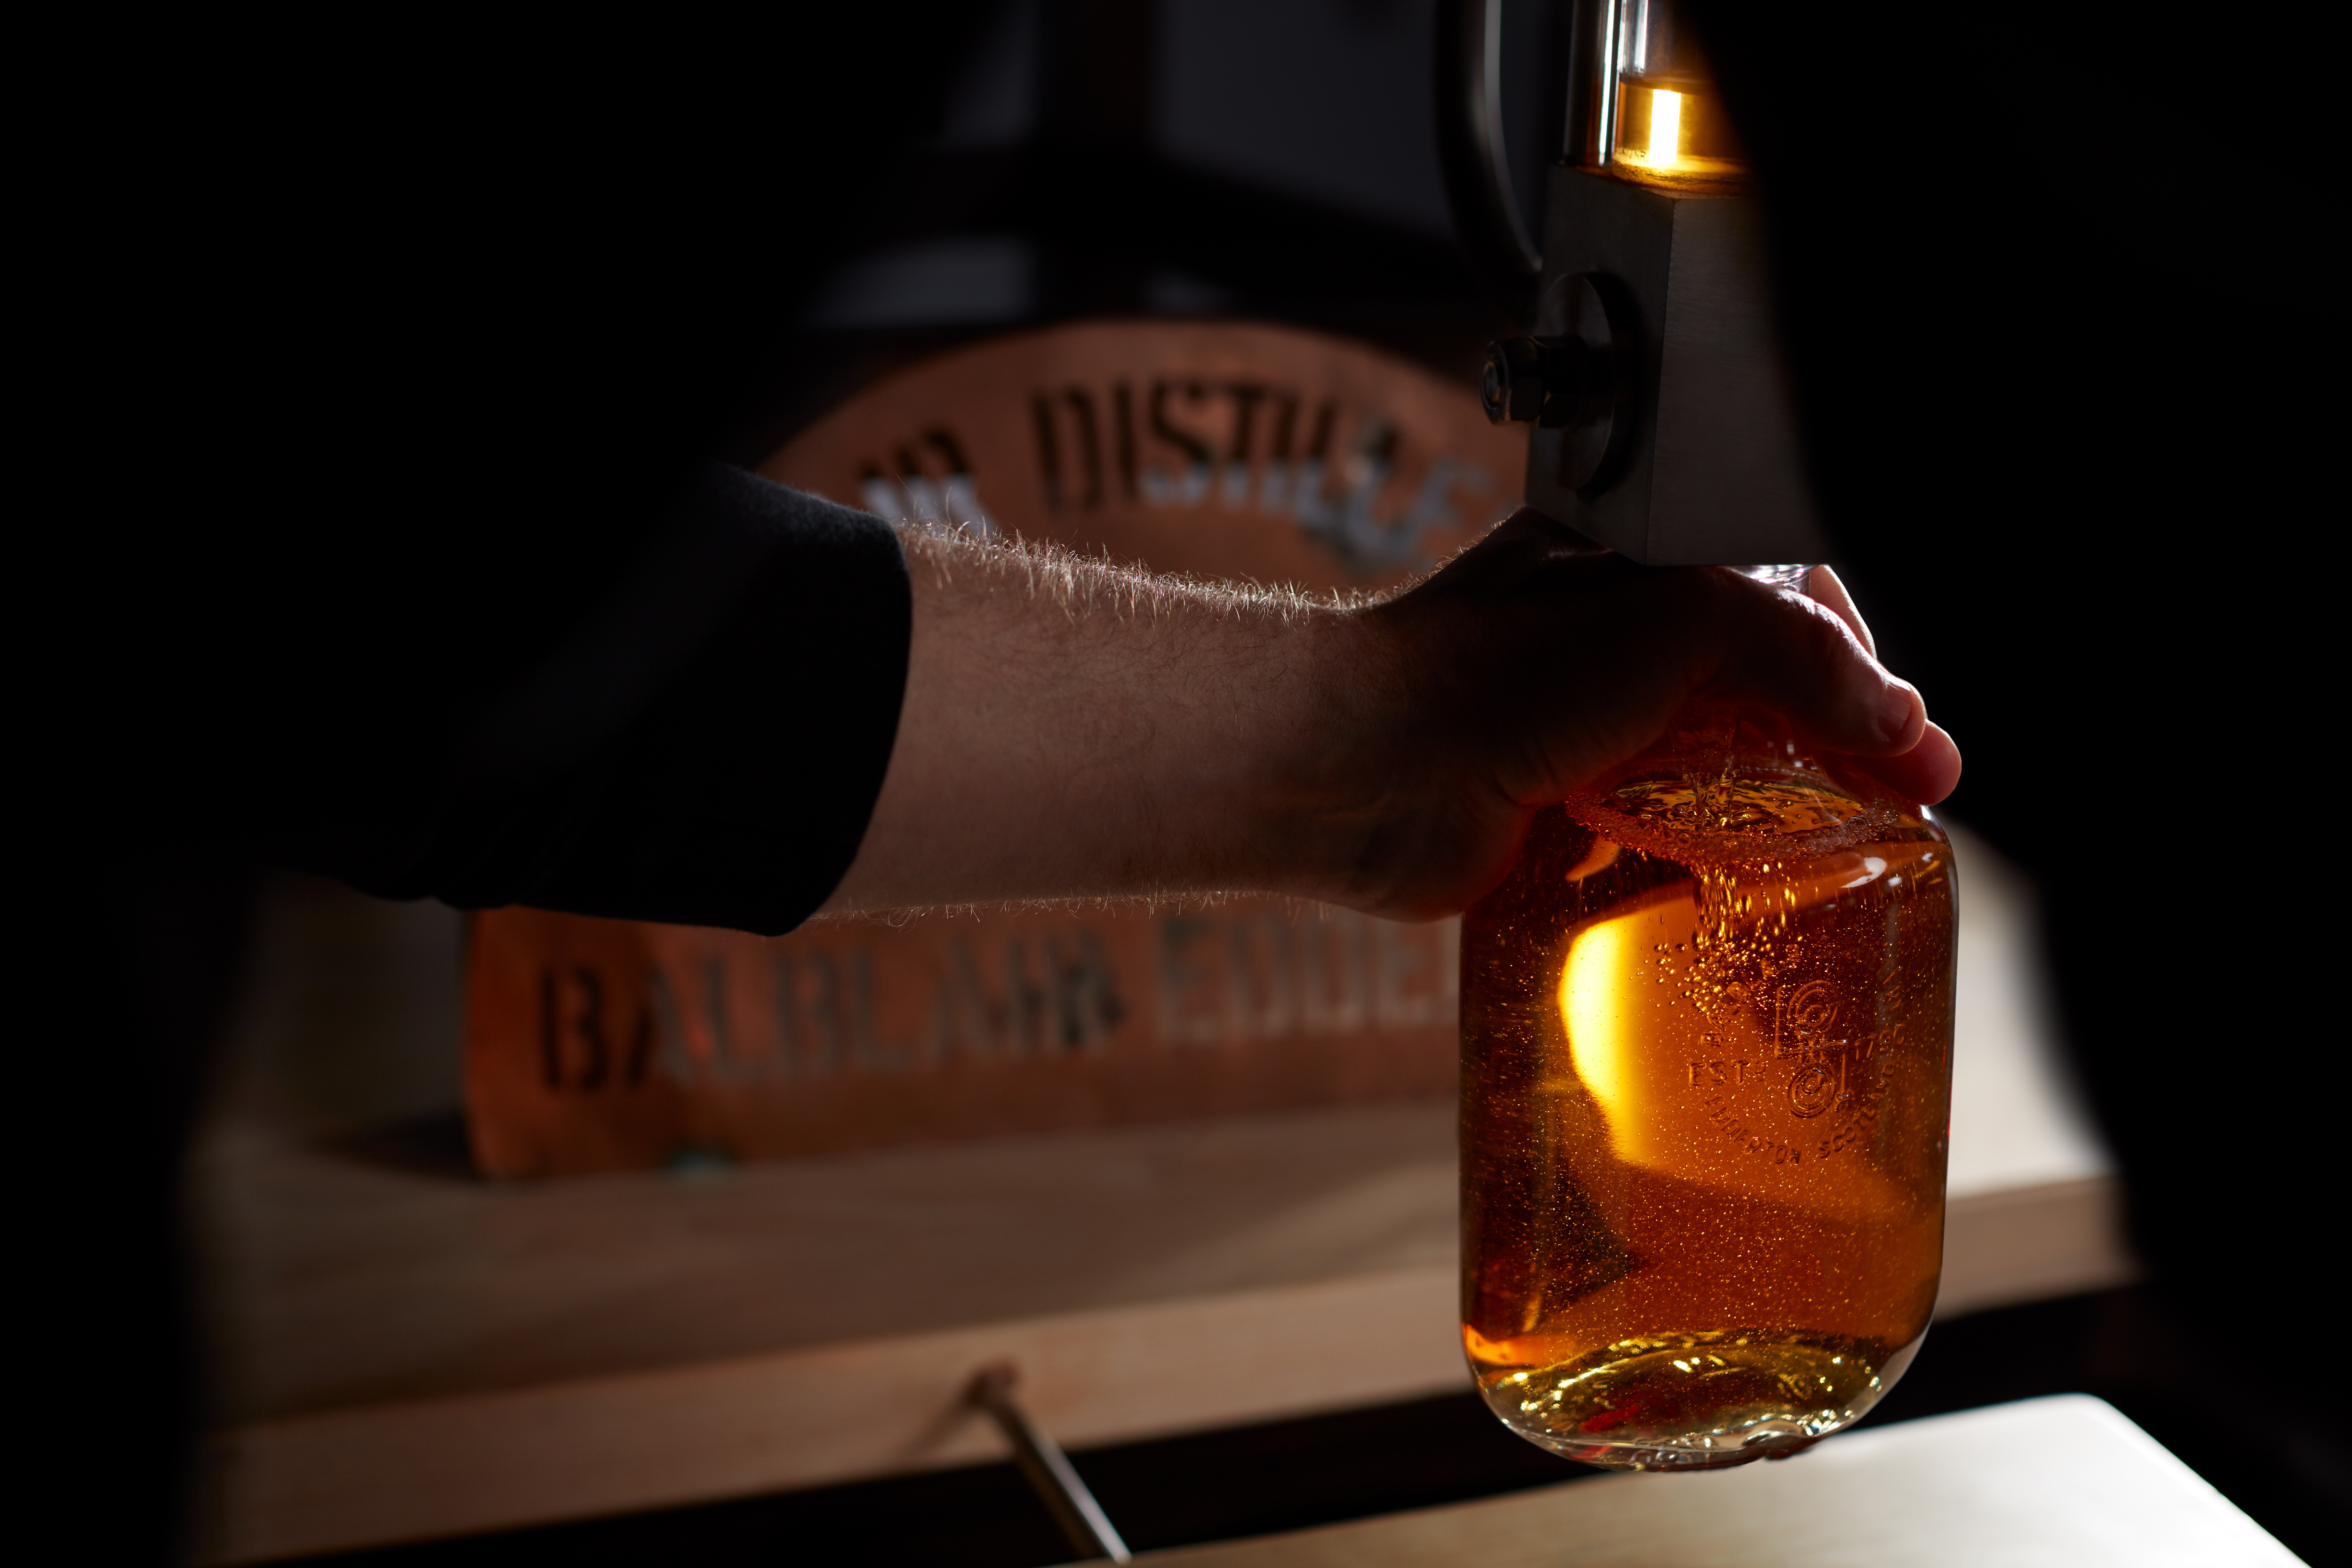 Balblair Whisky hand bottle - we welcome visitors to buy a bottle from a hand-selected cask which you can fill, cork, seal and label yourself.